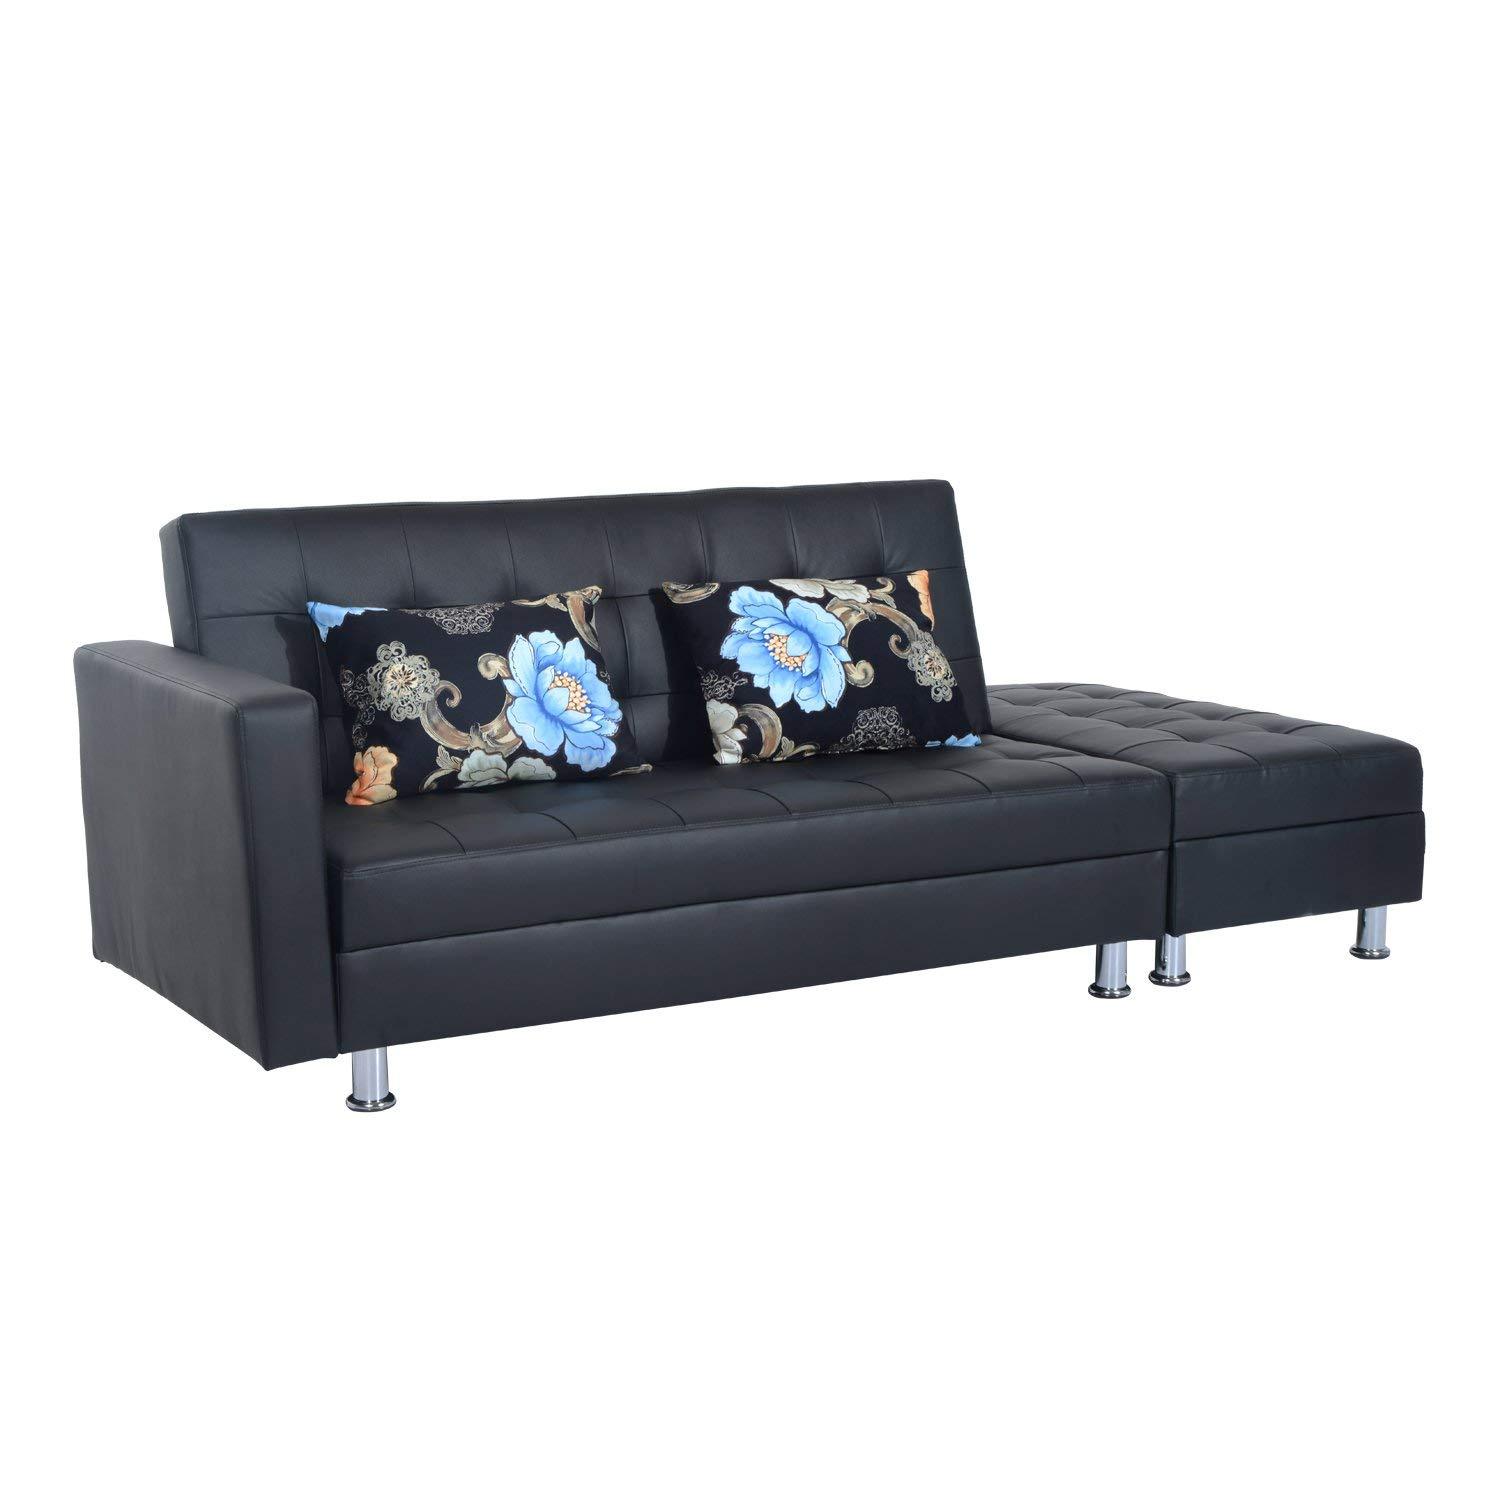 Festnight Futon Lounger Sit Faux Leather Sleeper Sofa Couch Bed with Storage Ottoman Black